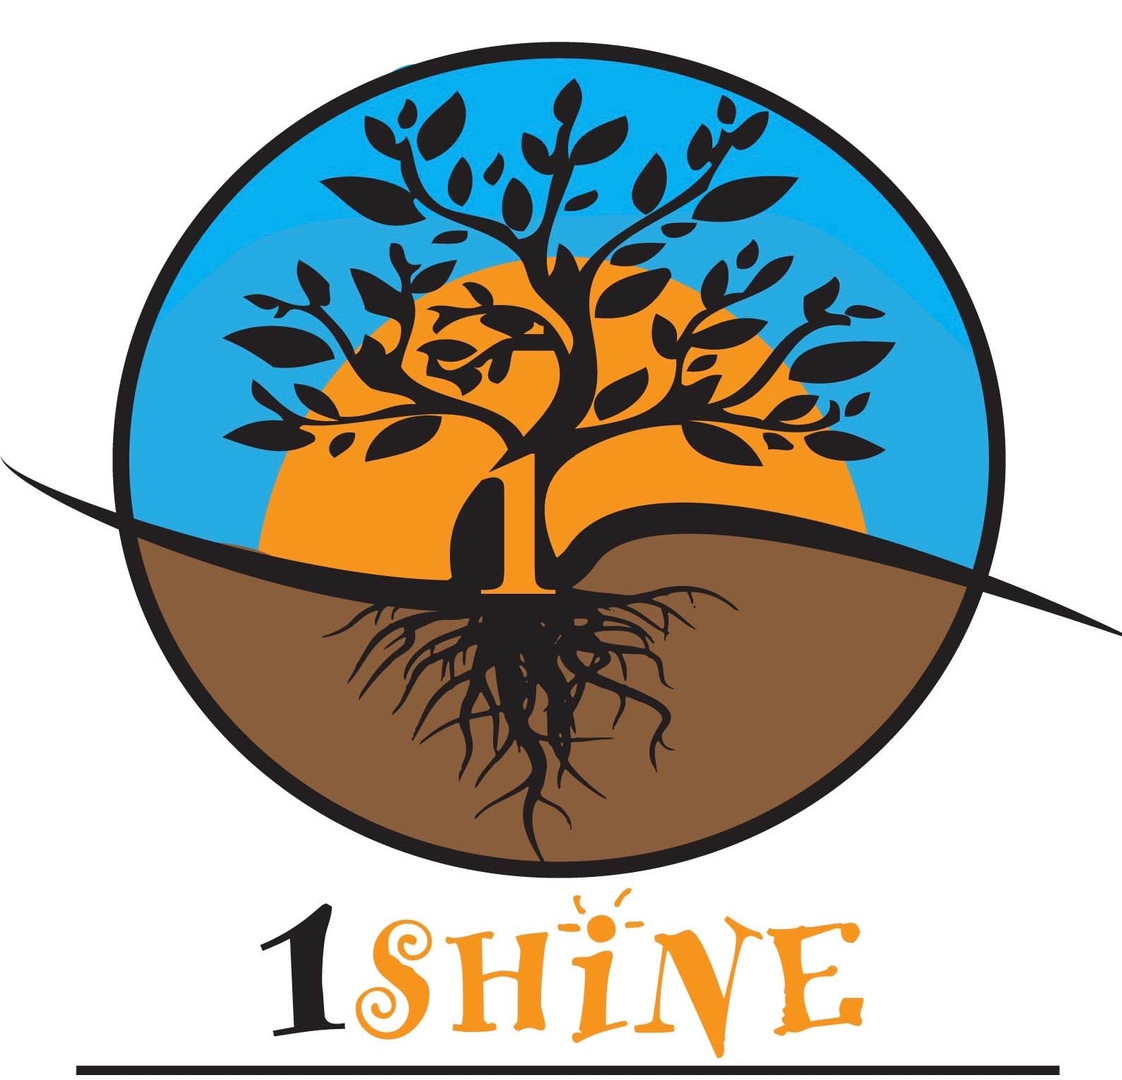 1 Shine Youth Services